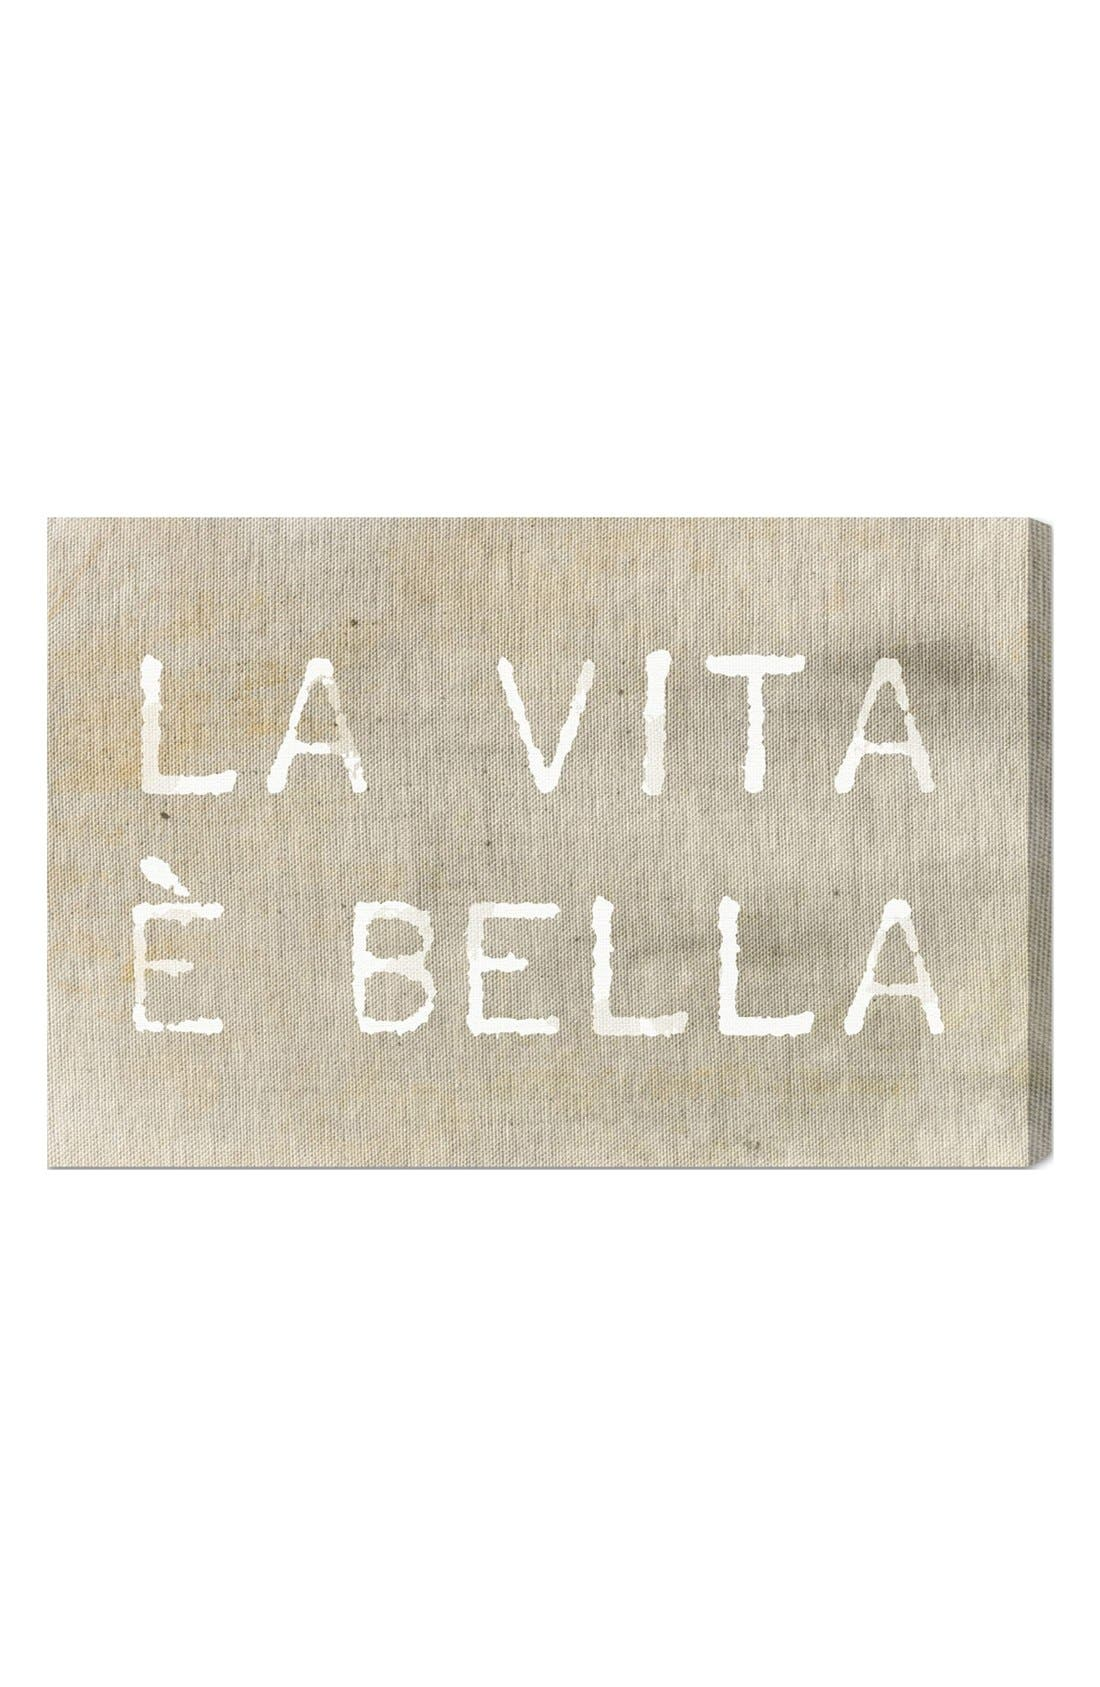 'La Vita È Bella' Wall Art,                             Main thumbnail 1, color,                             250